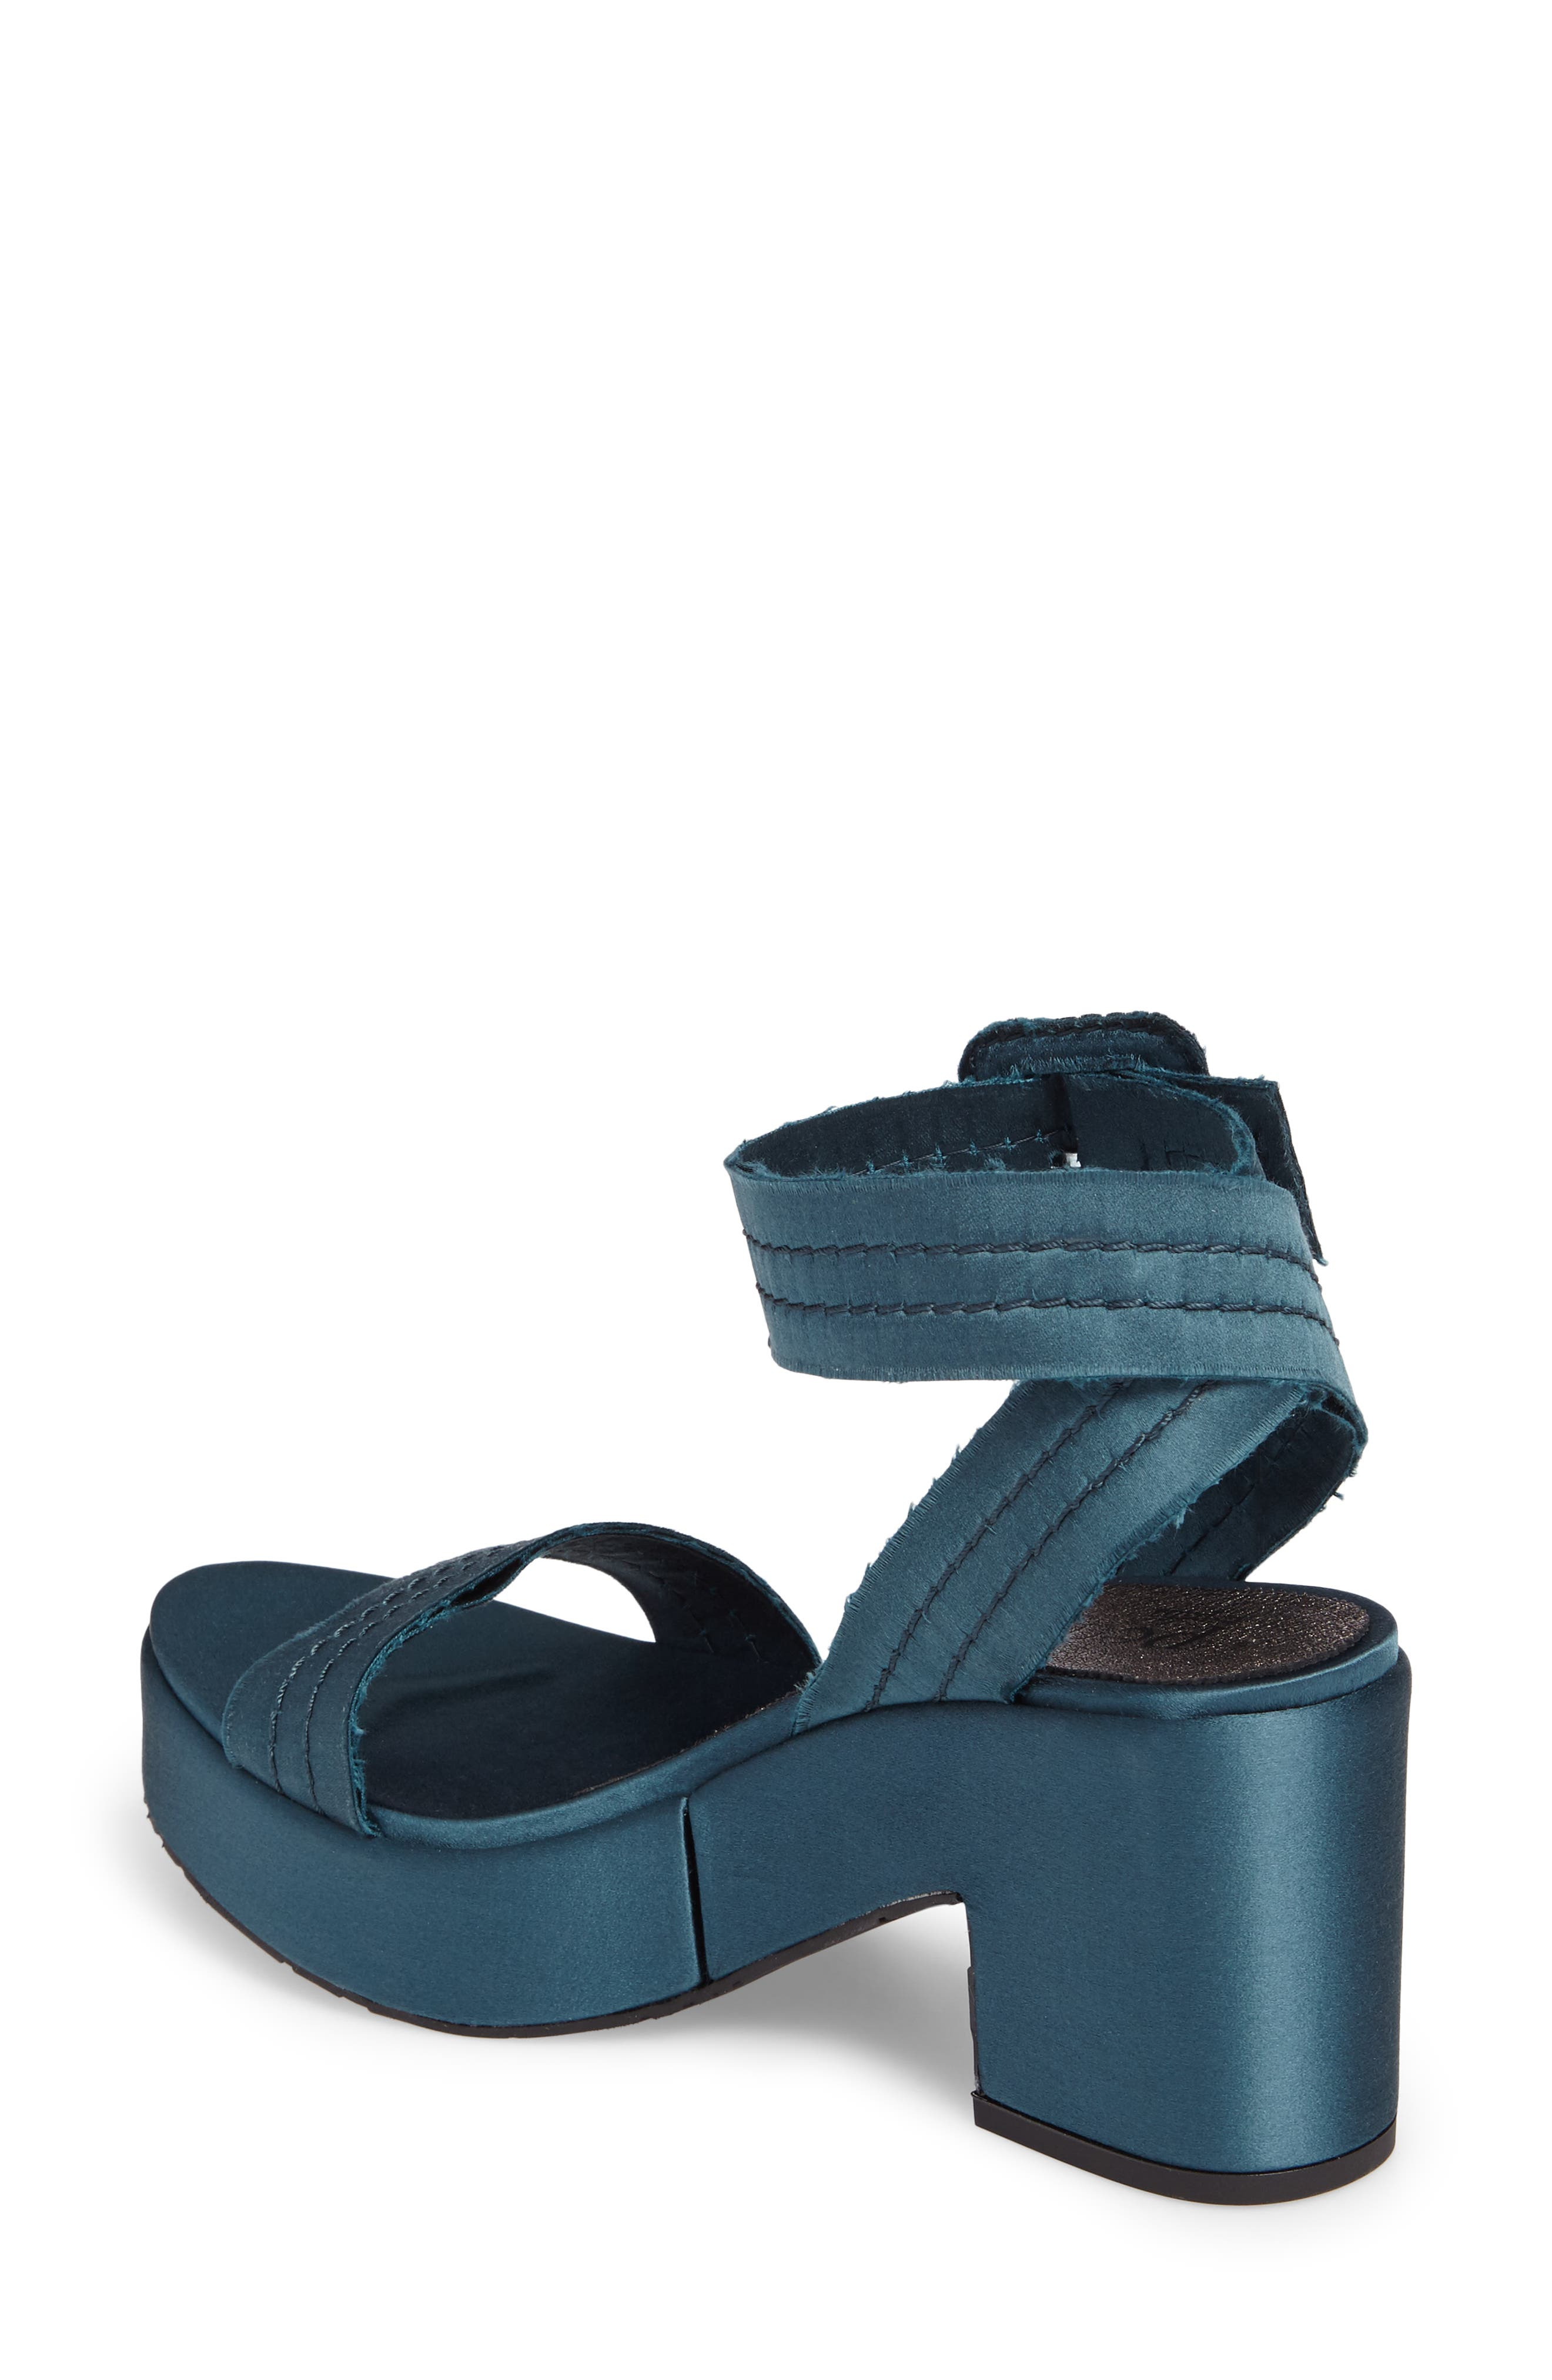 Davida Platform Sandal,                             Alternate thumbnail 2, color,                             400